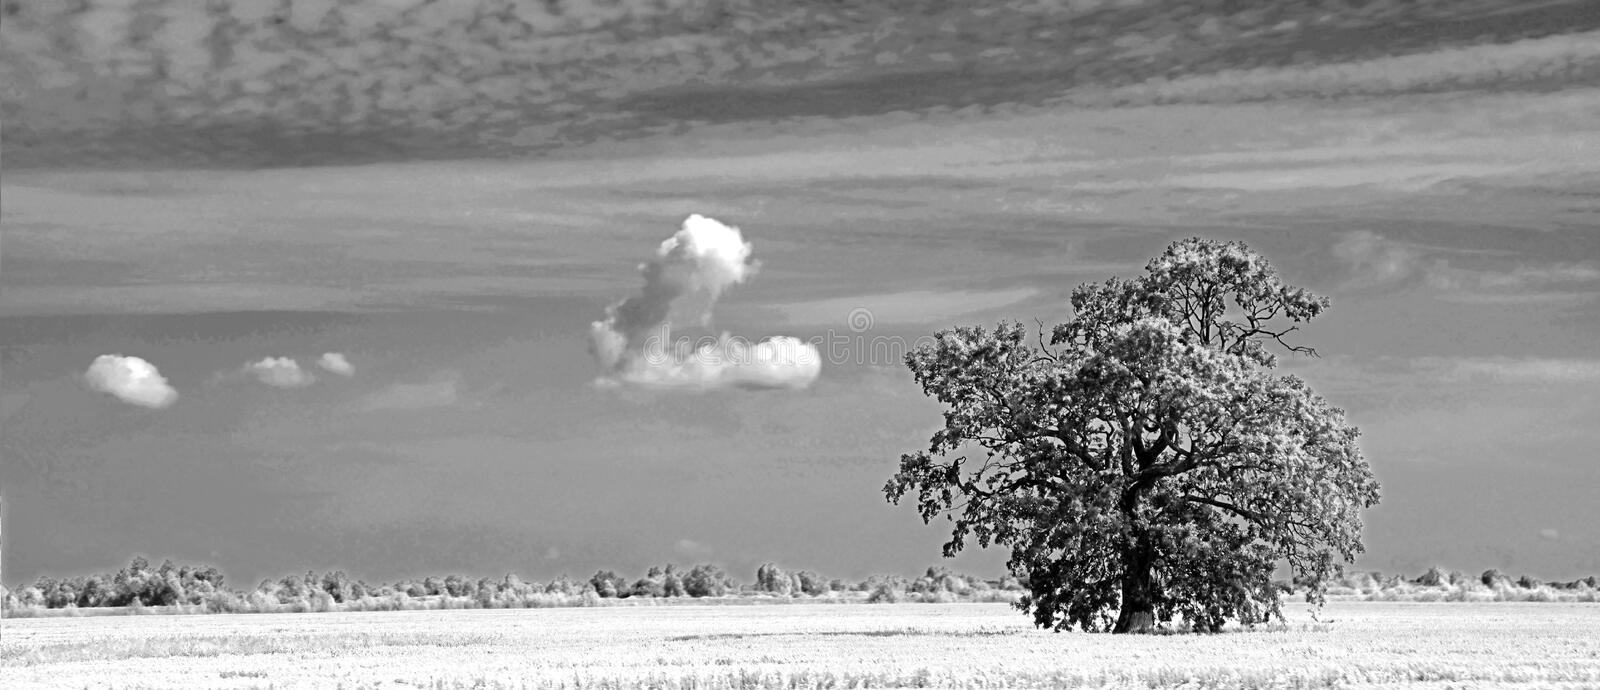 Lonely mighty tree in a field under the sky. Big old oak. royalty free stock photography